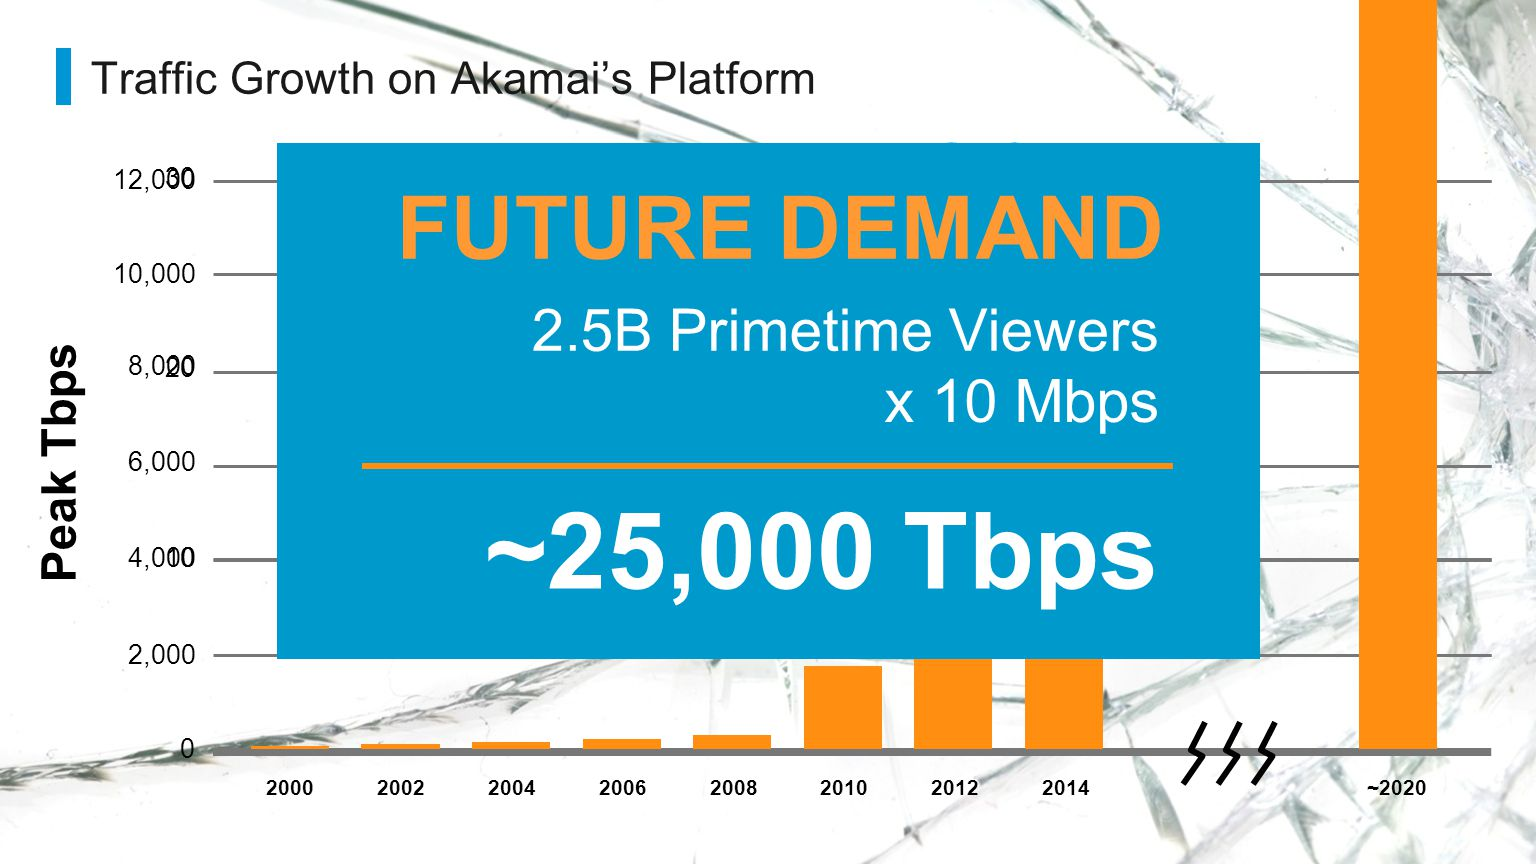 Traffic Growth on Akamai's Platform